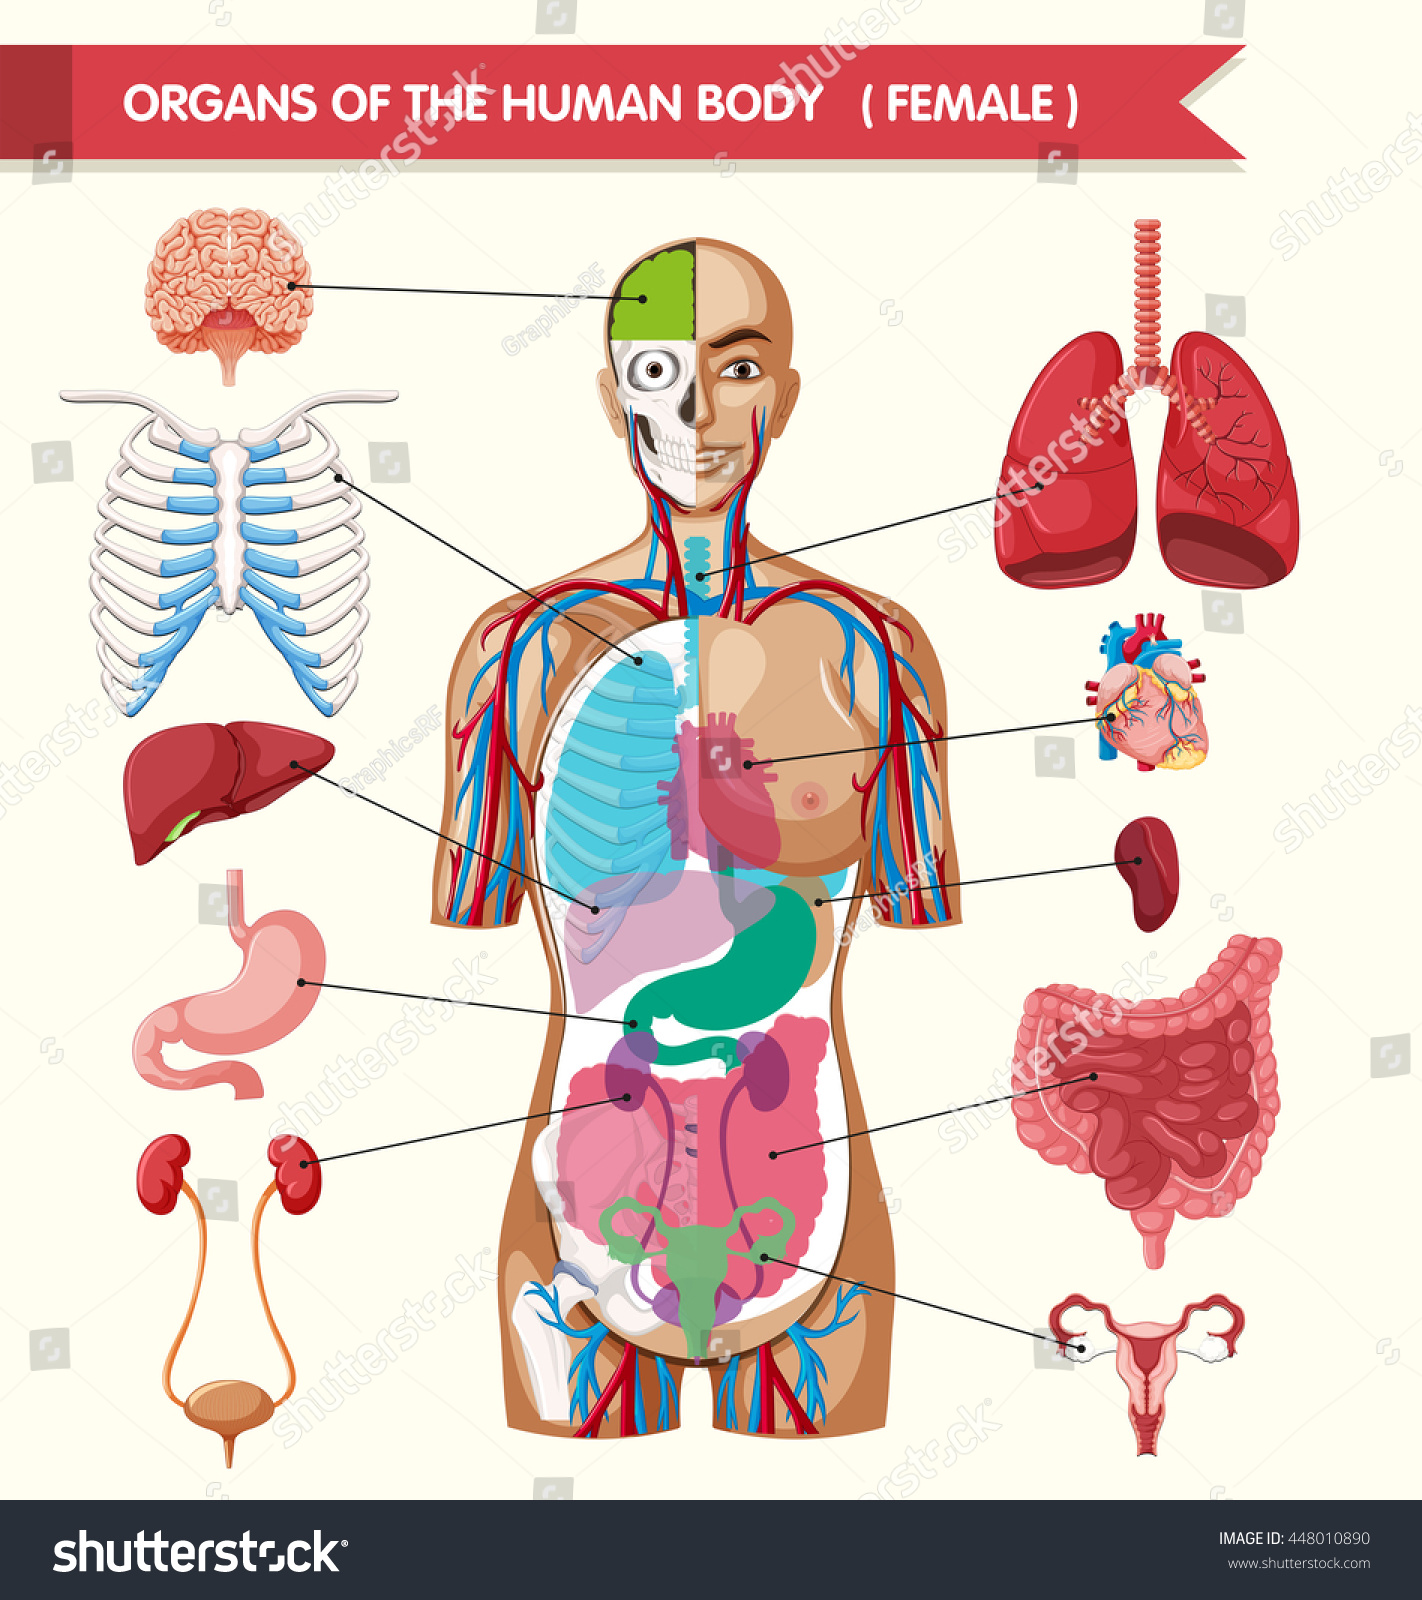 Organs Human Body Illustration Stock Vector Royalty Free 448010890